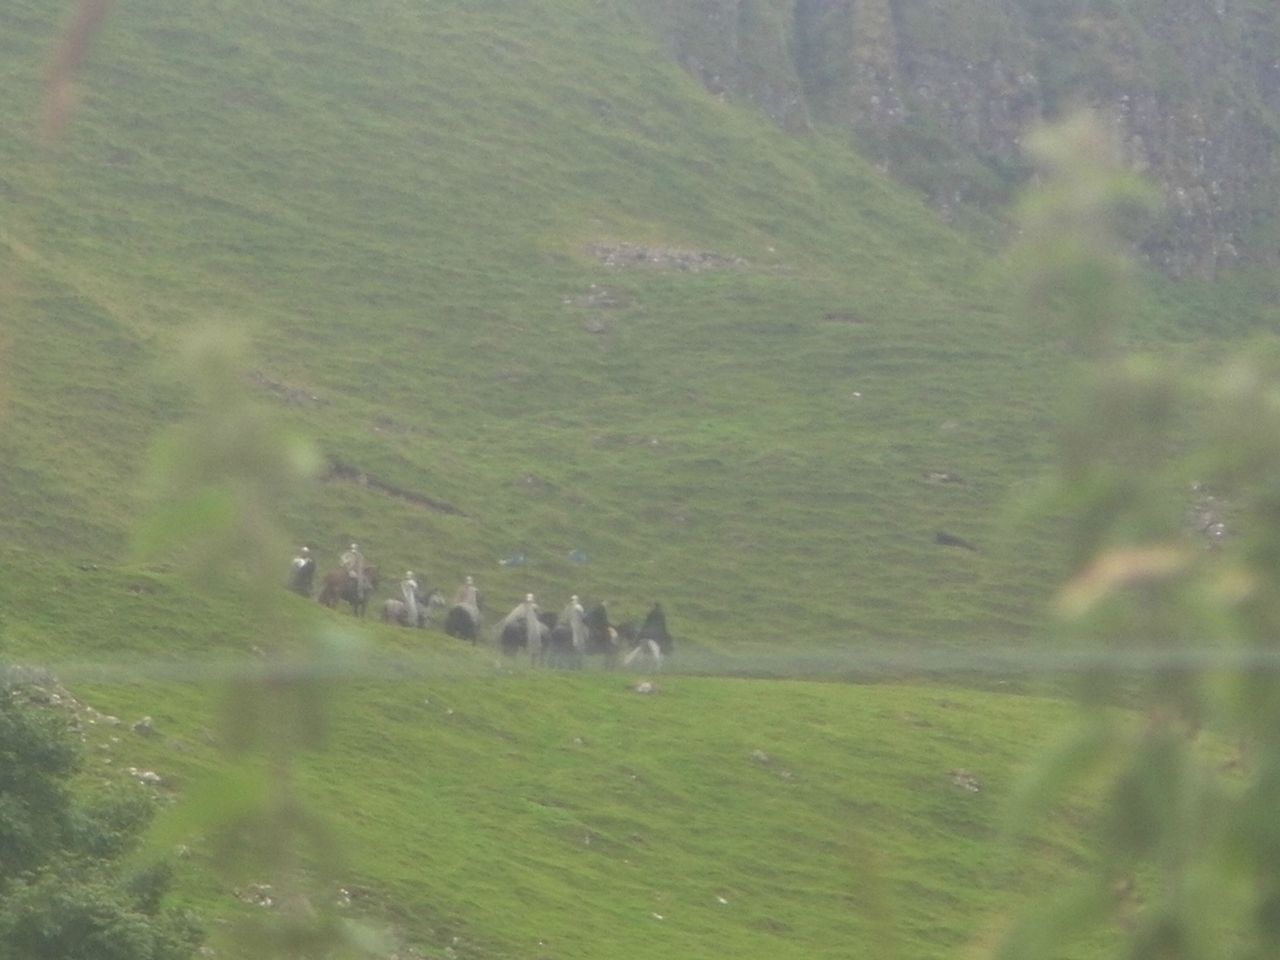 Game of Thrones Sallagh 2014